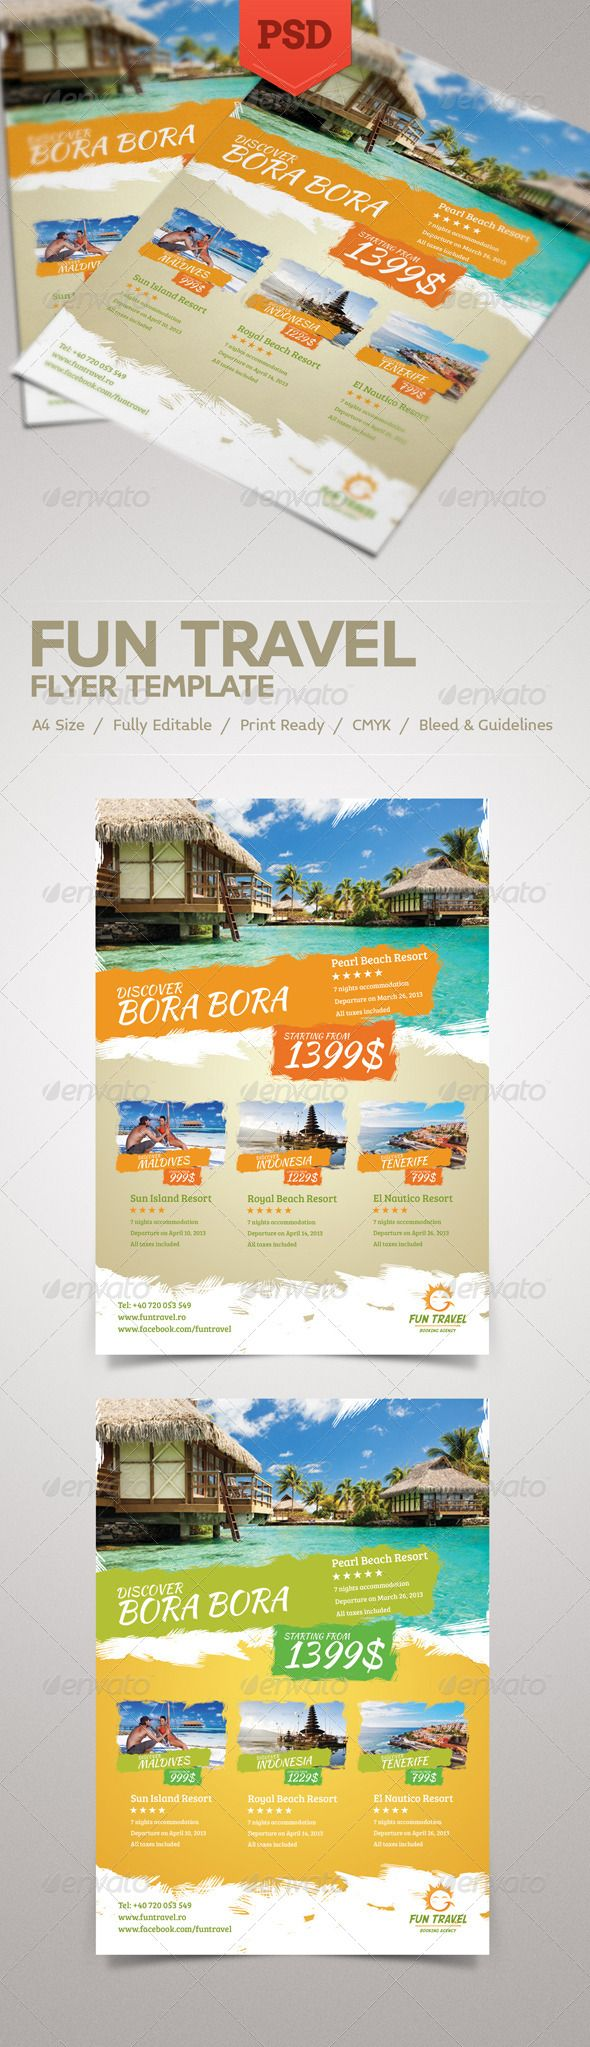 Fun Poster Templates 17 Best Newtrip Images On Pinterest  Flyer Design Posters And .